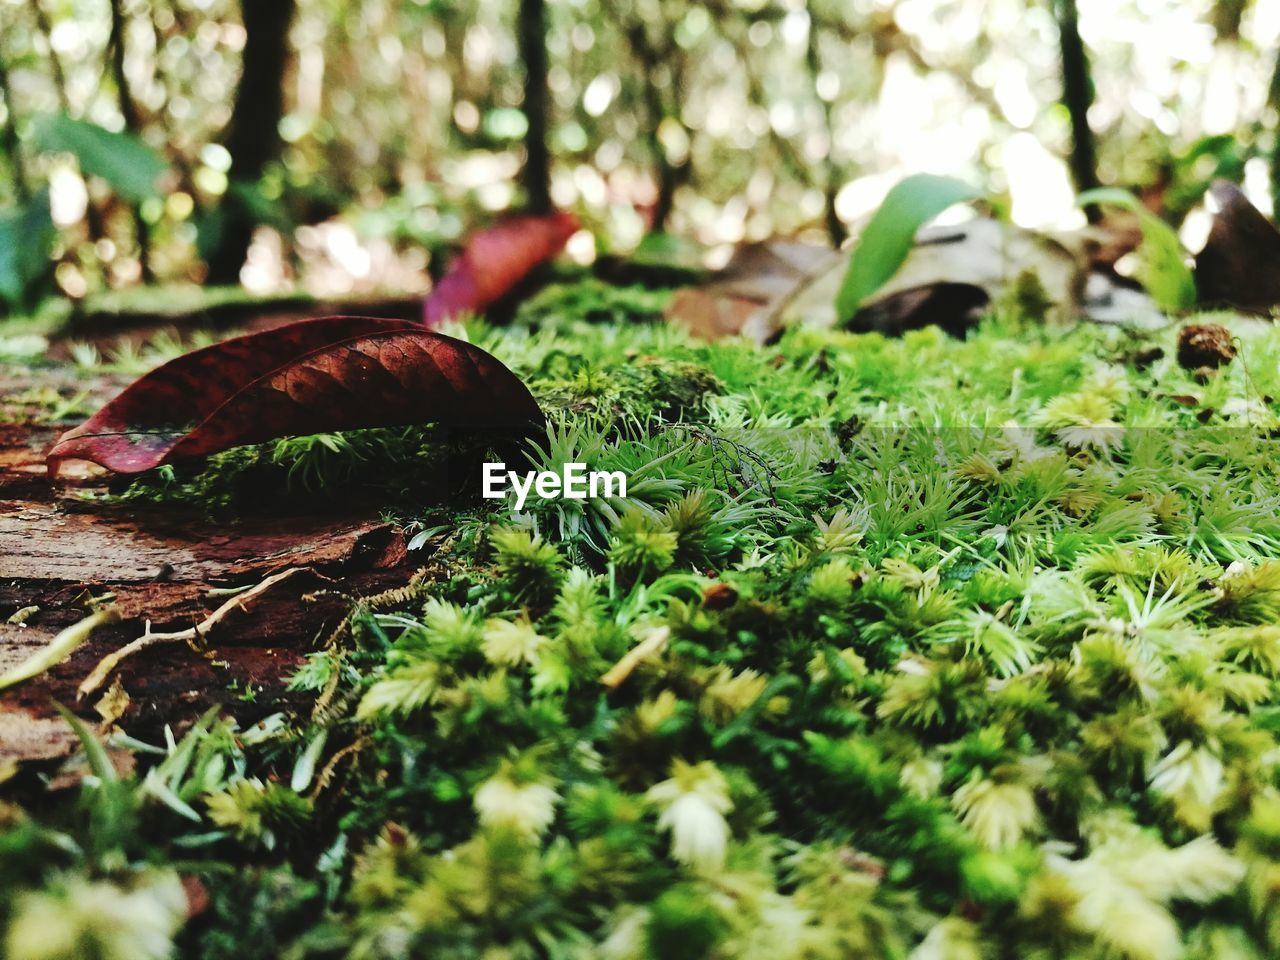 leaf, nature, growth, one animal, outdoors, day, no people, forest, plant, animal themes, grass, close-up, beauty in nature, fragility